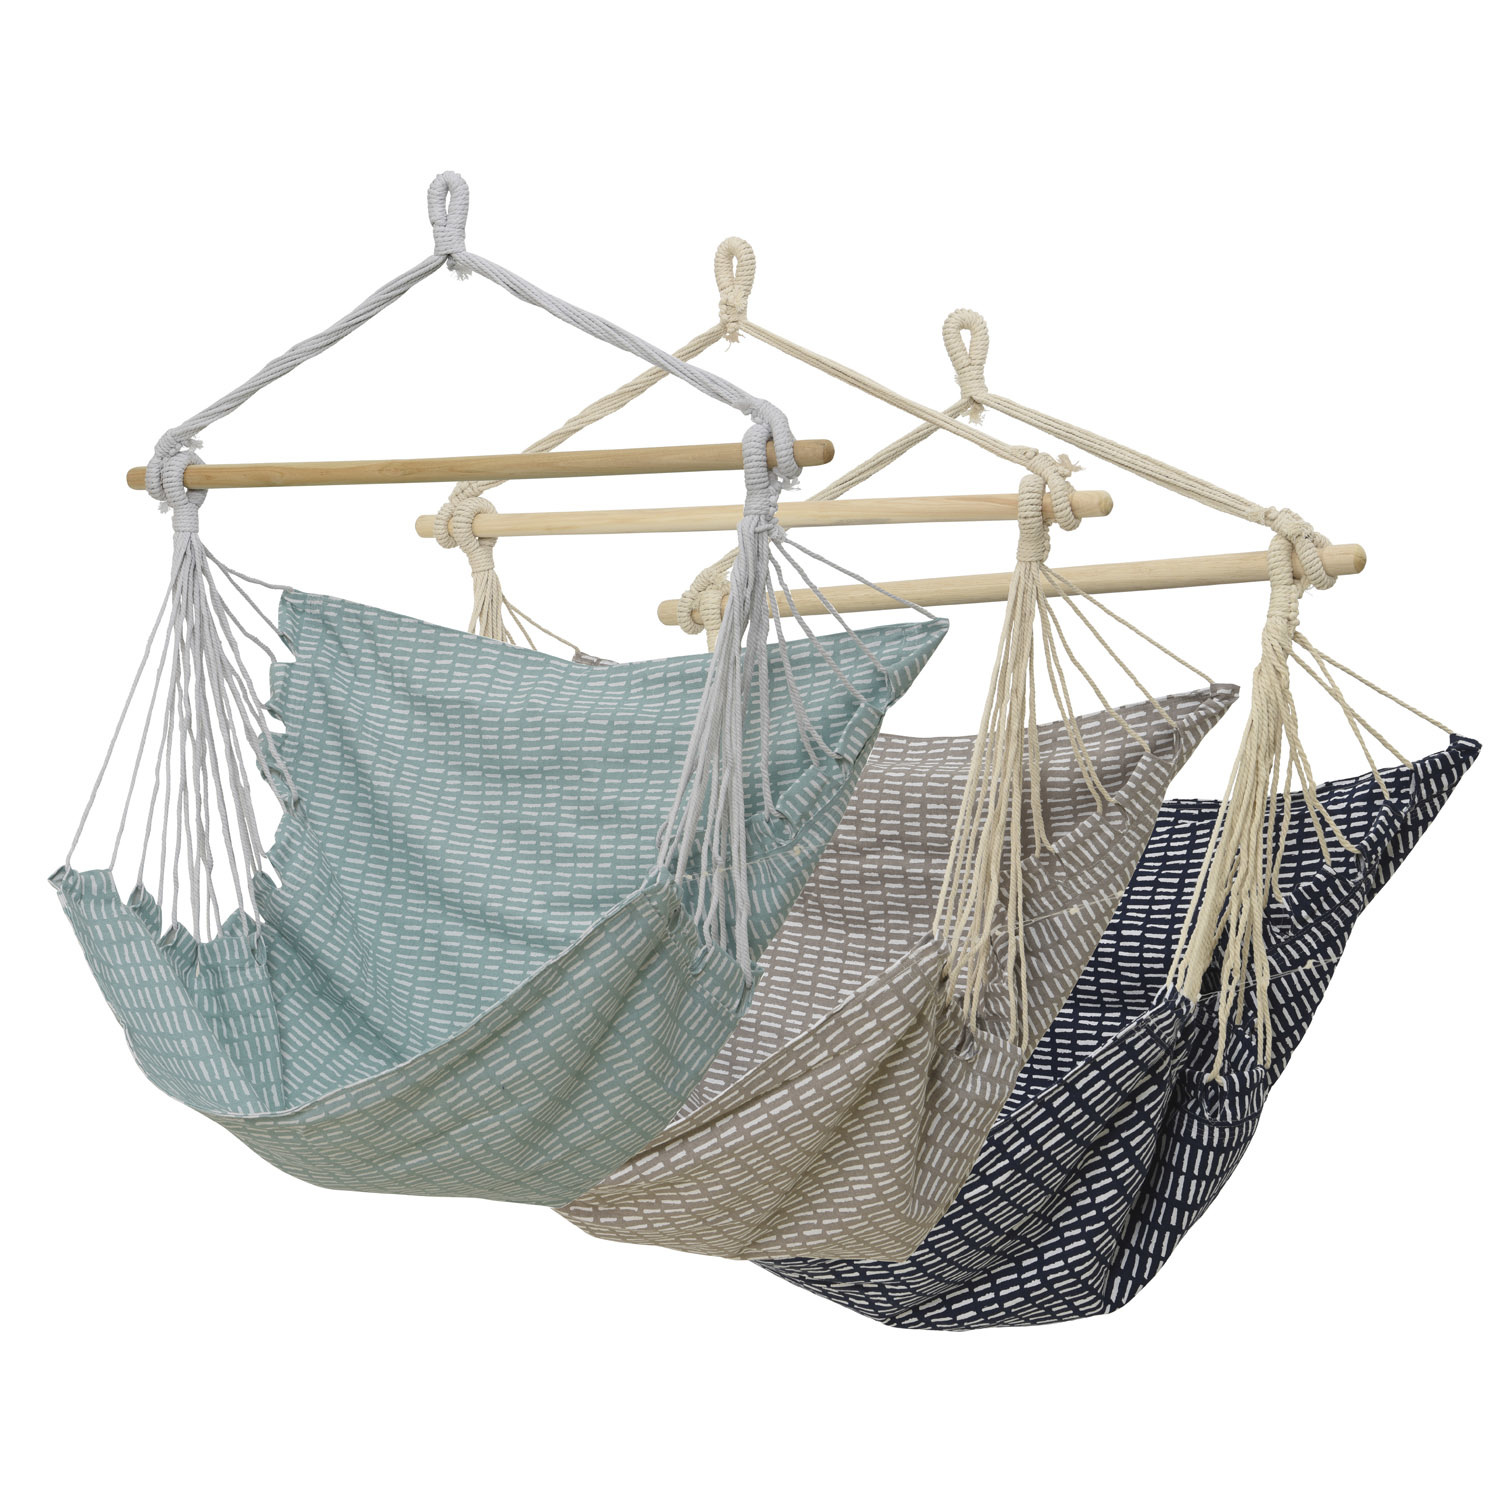 Evergreen Everyday Patterned Hammock Chair